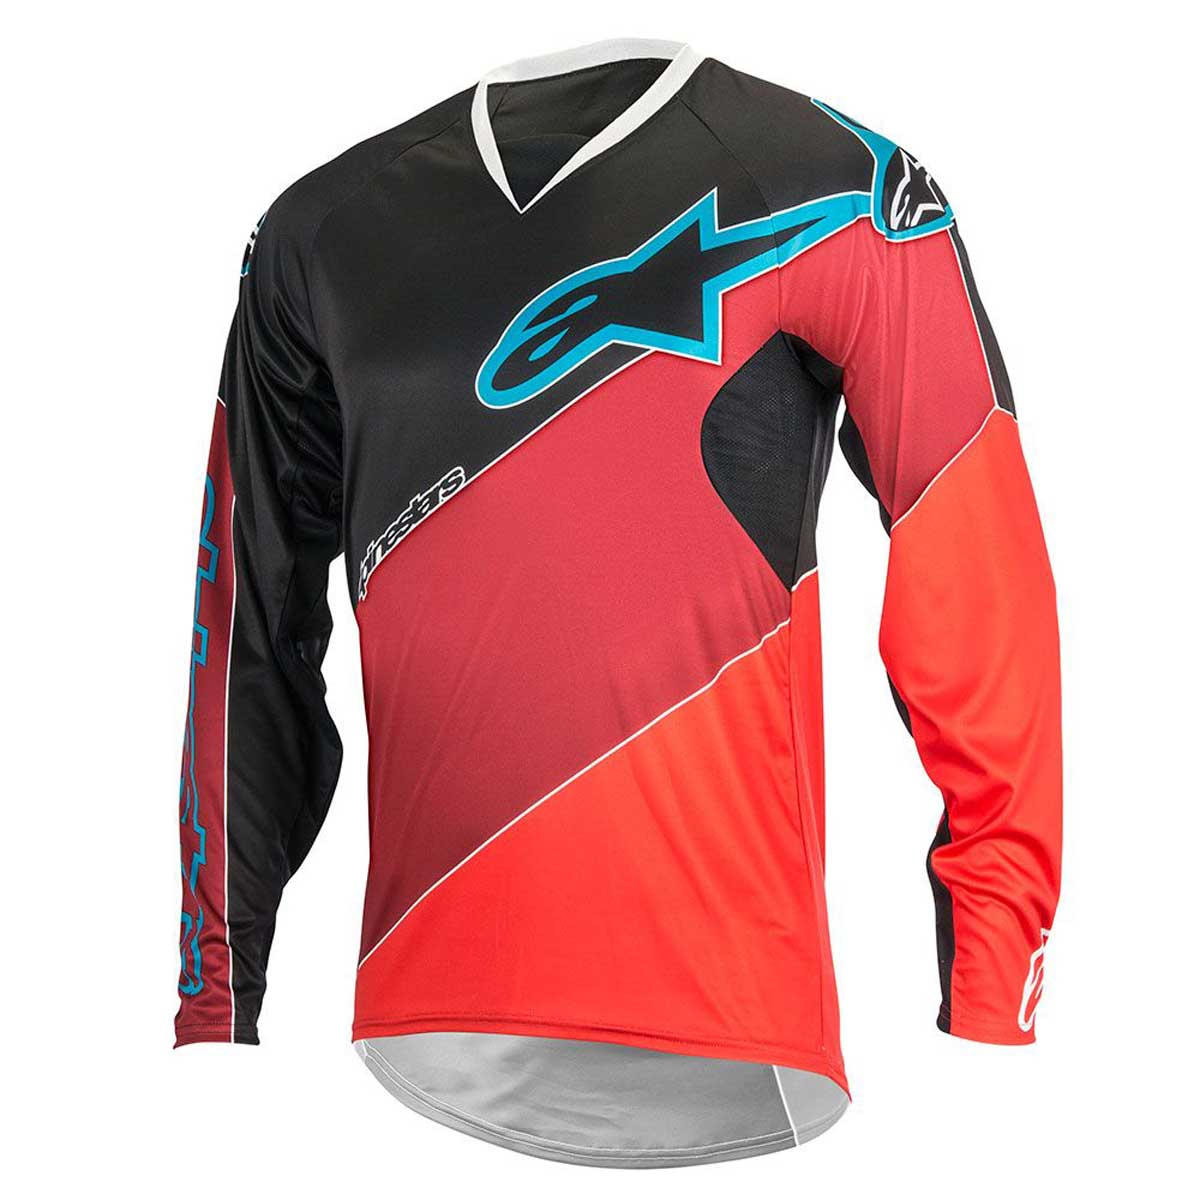 Alpinestars Black-red 2017 Vector Long Sleeved MTB Jersey M. About this  product. Picture 1 of 2  Picture 2 of 2 4c0697972